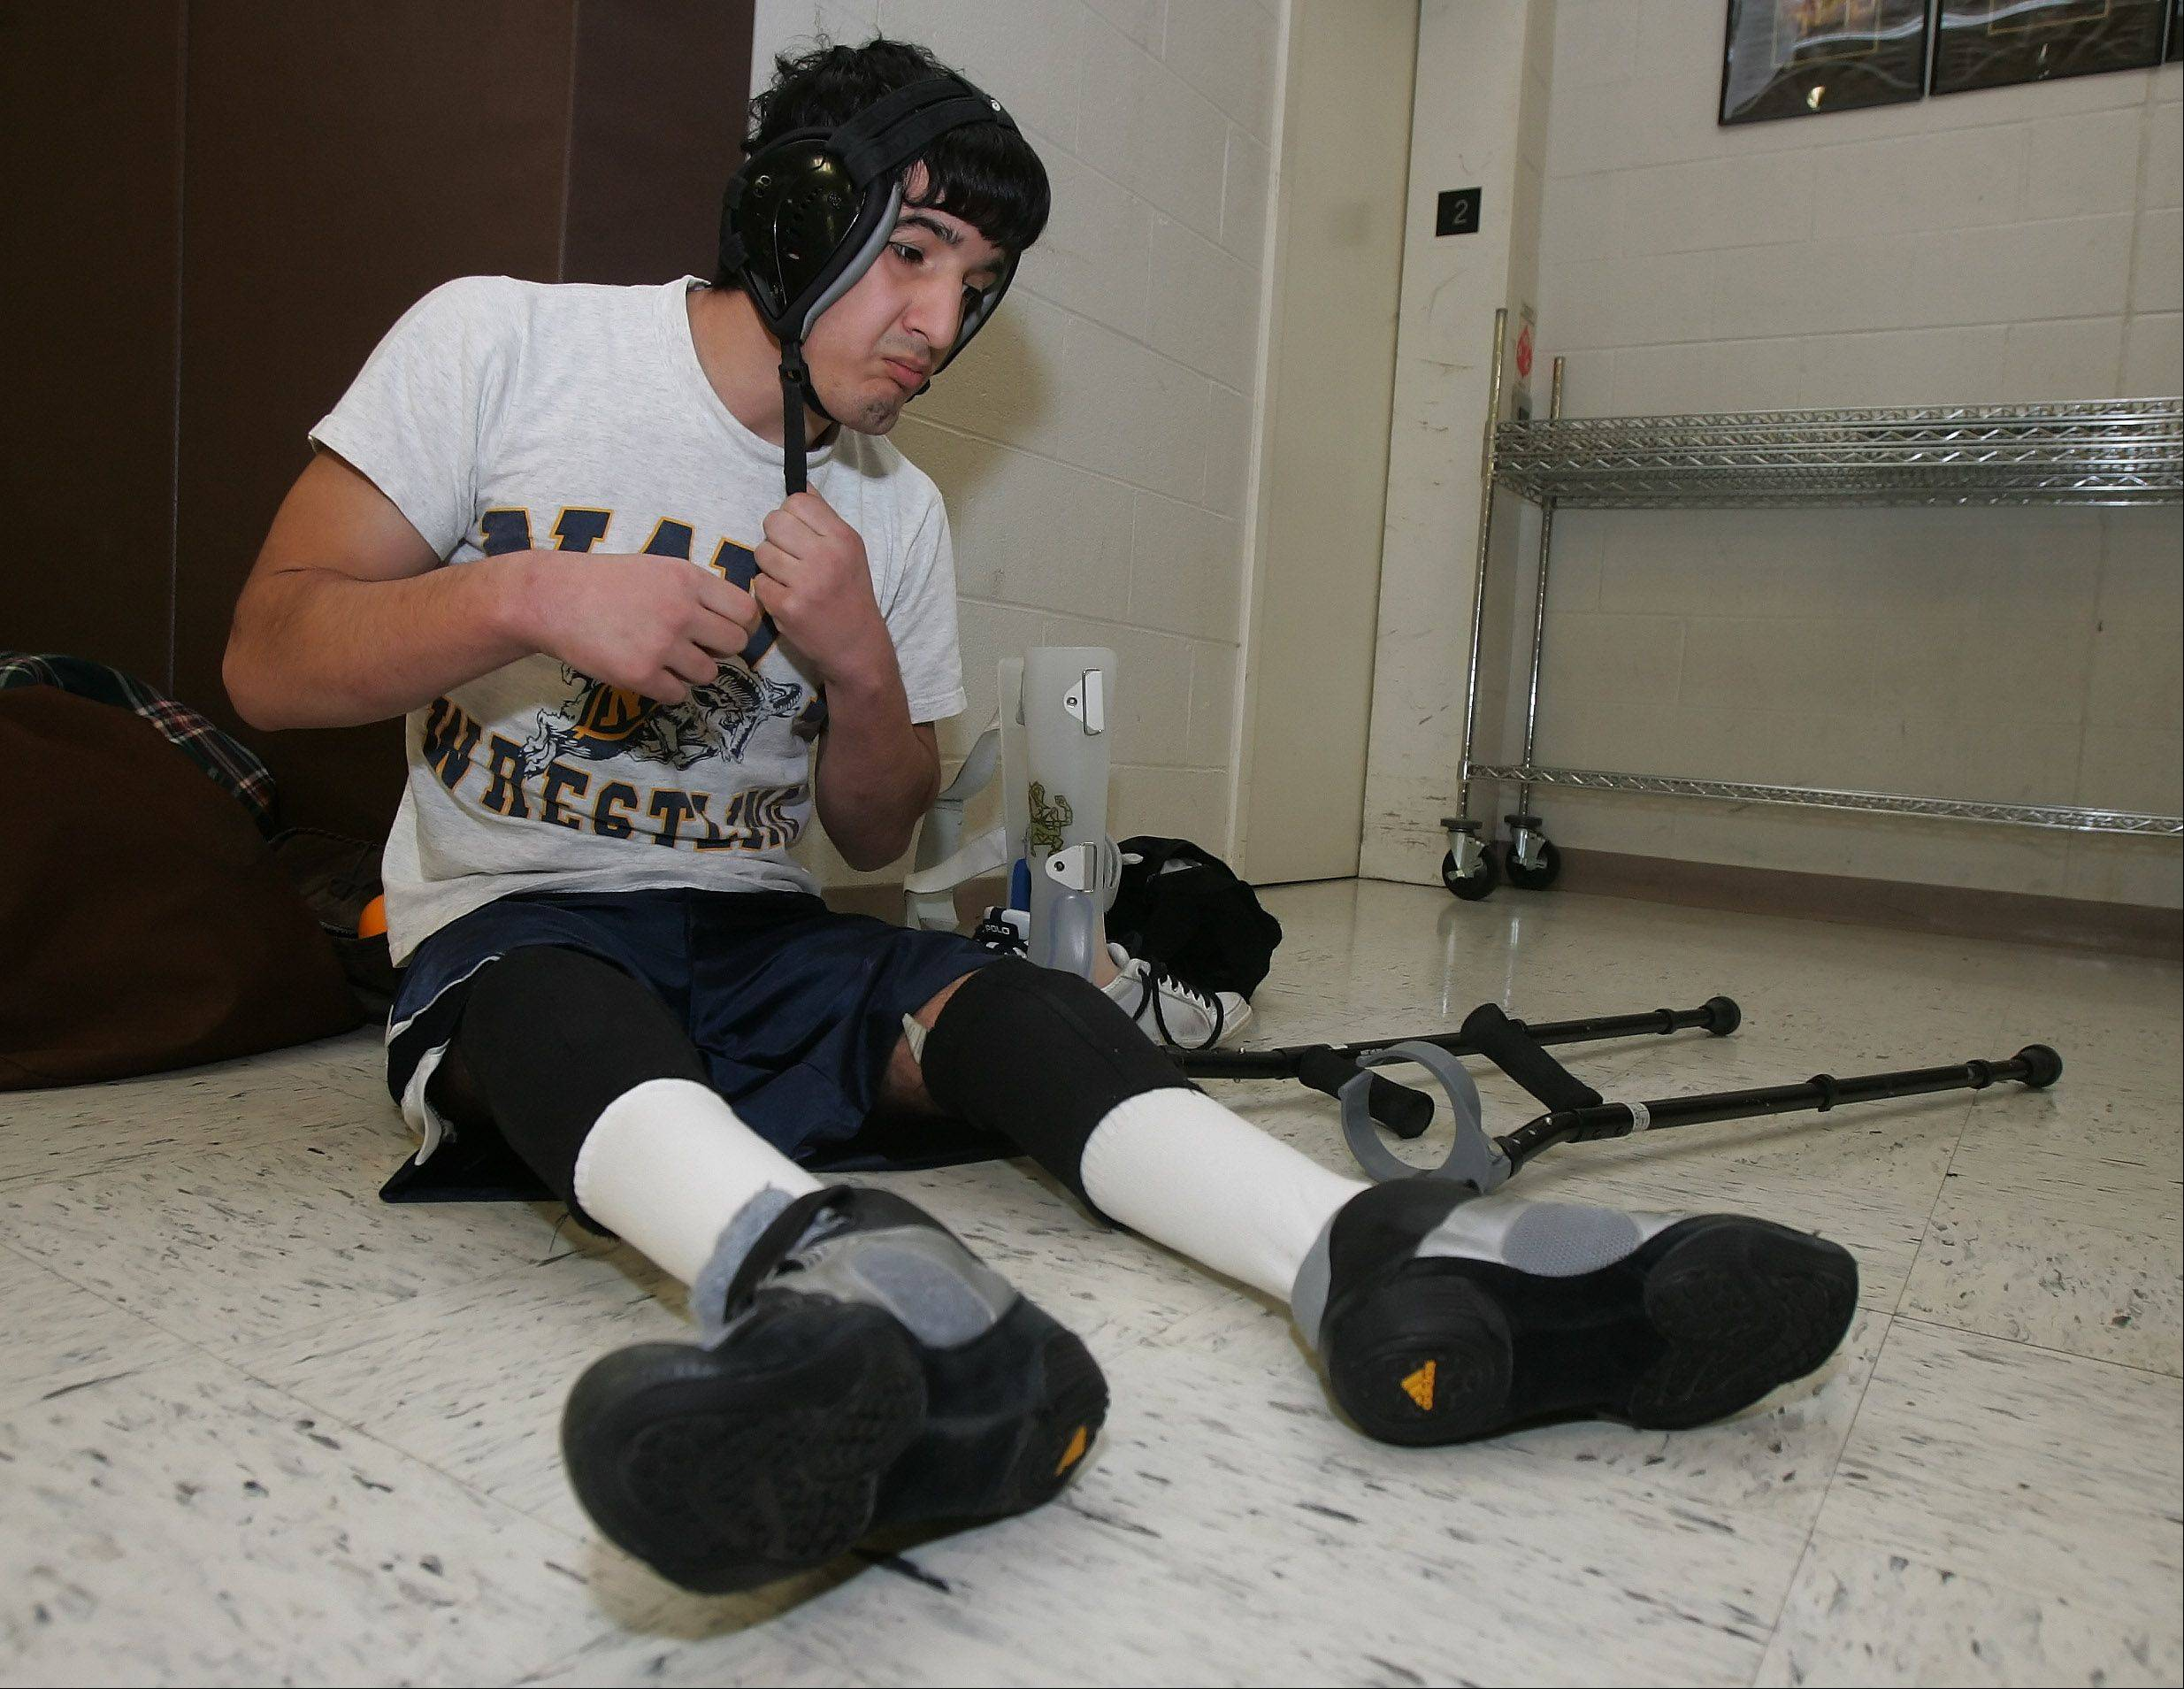 Carmel Catholic's Cristian Migliarese prepares for wresting practice. He's won twice by pin this season.